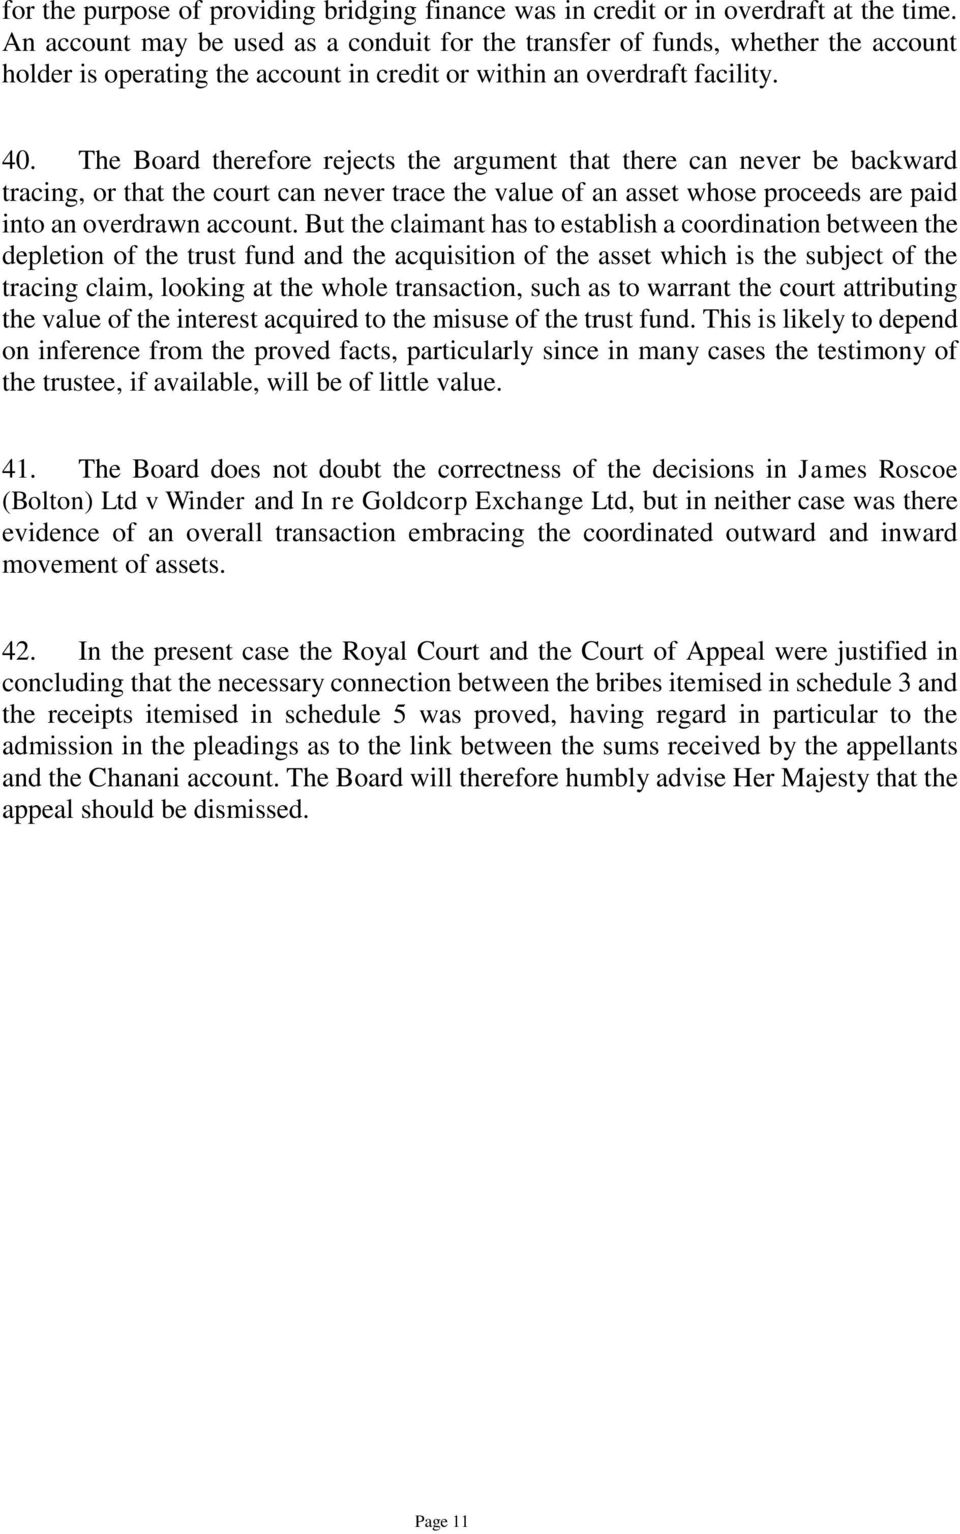 The Board therefore rejects the argument that there can never be backward tracing, or that the court can never trace the value of an asset whose proceeds are paid into an overdrawn account.